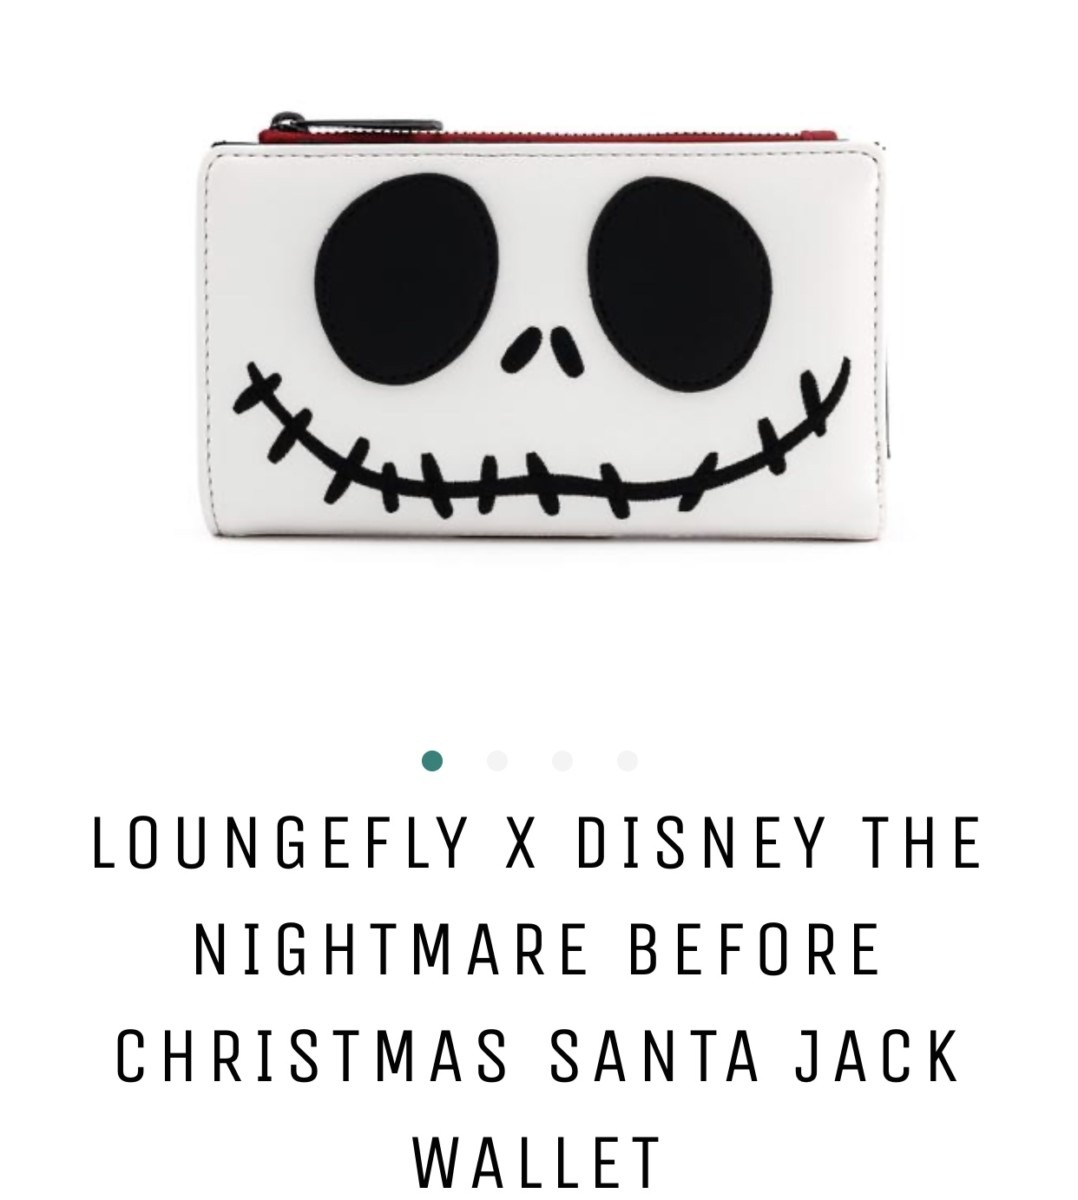 New Nightmare Before Christmas Bags from Loungefly 4